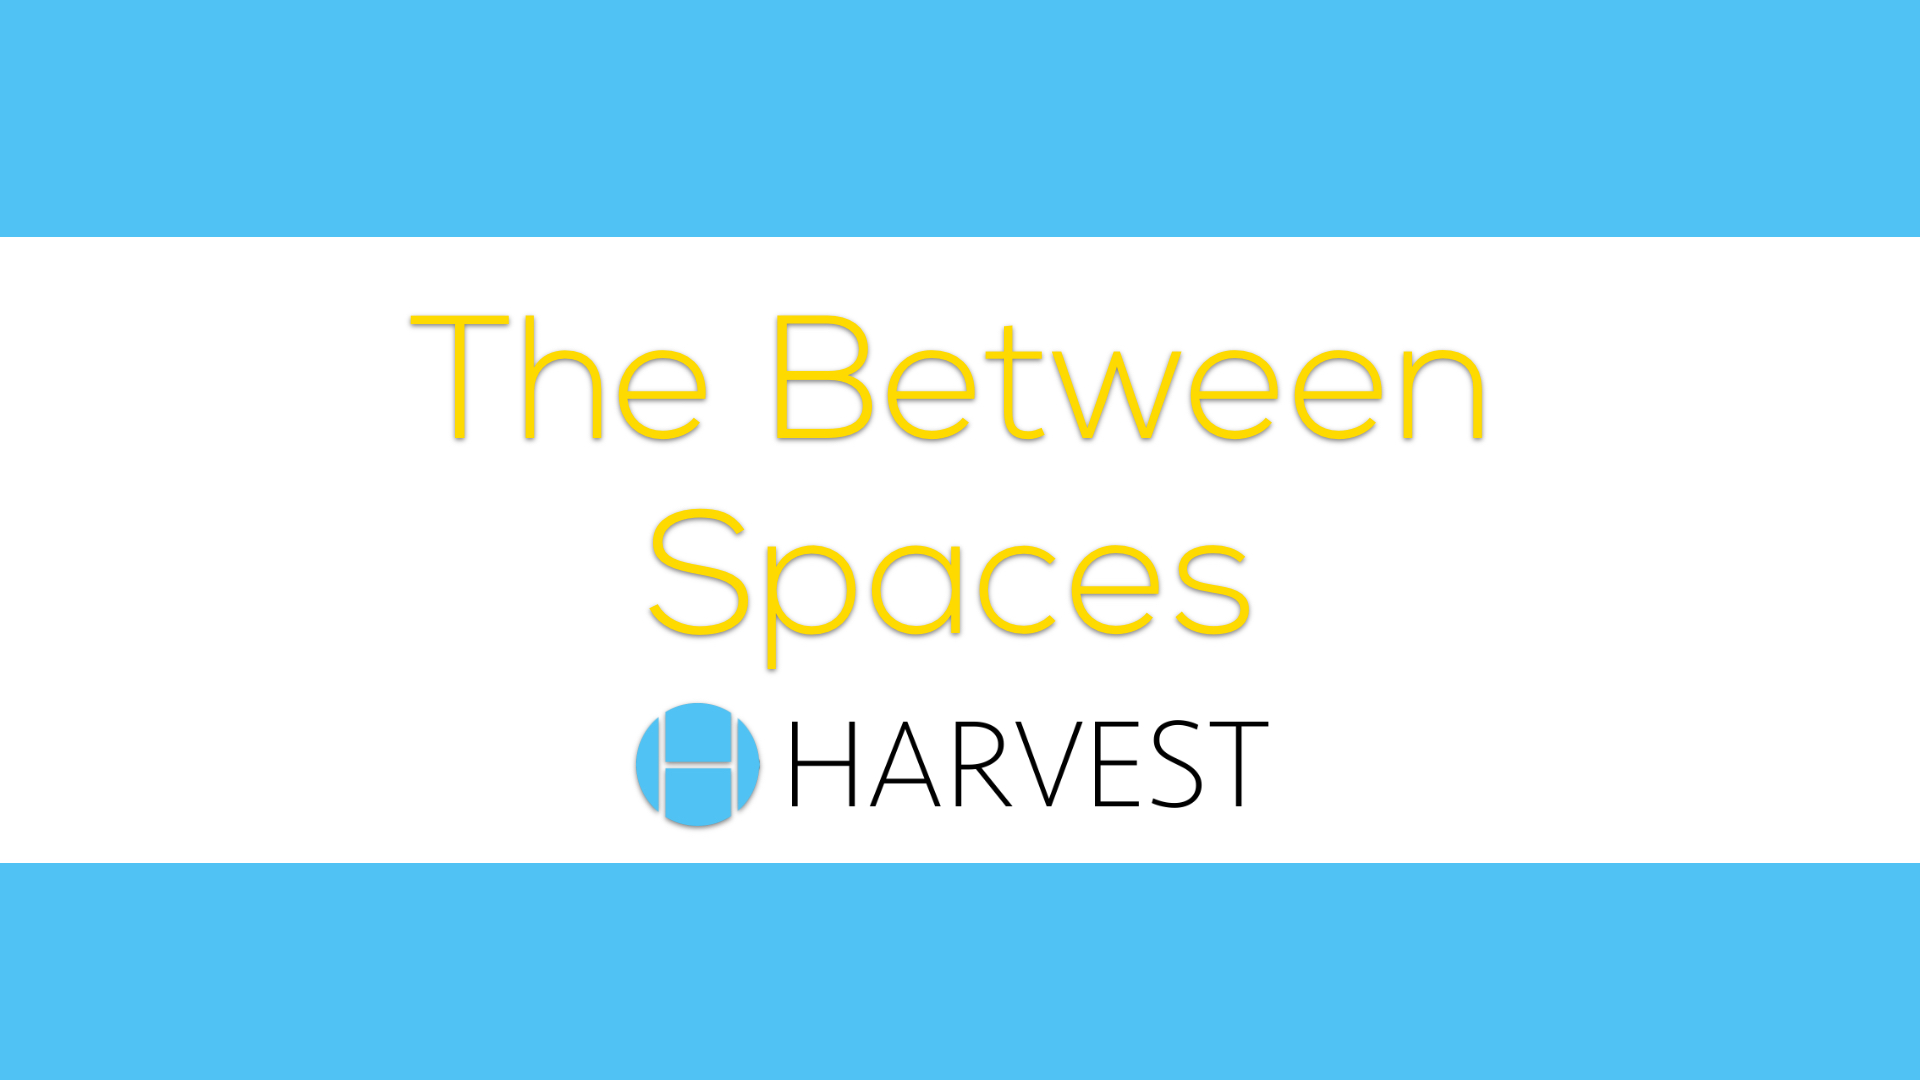 The Between Spaces